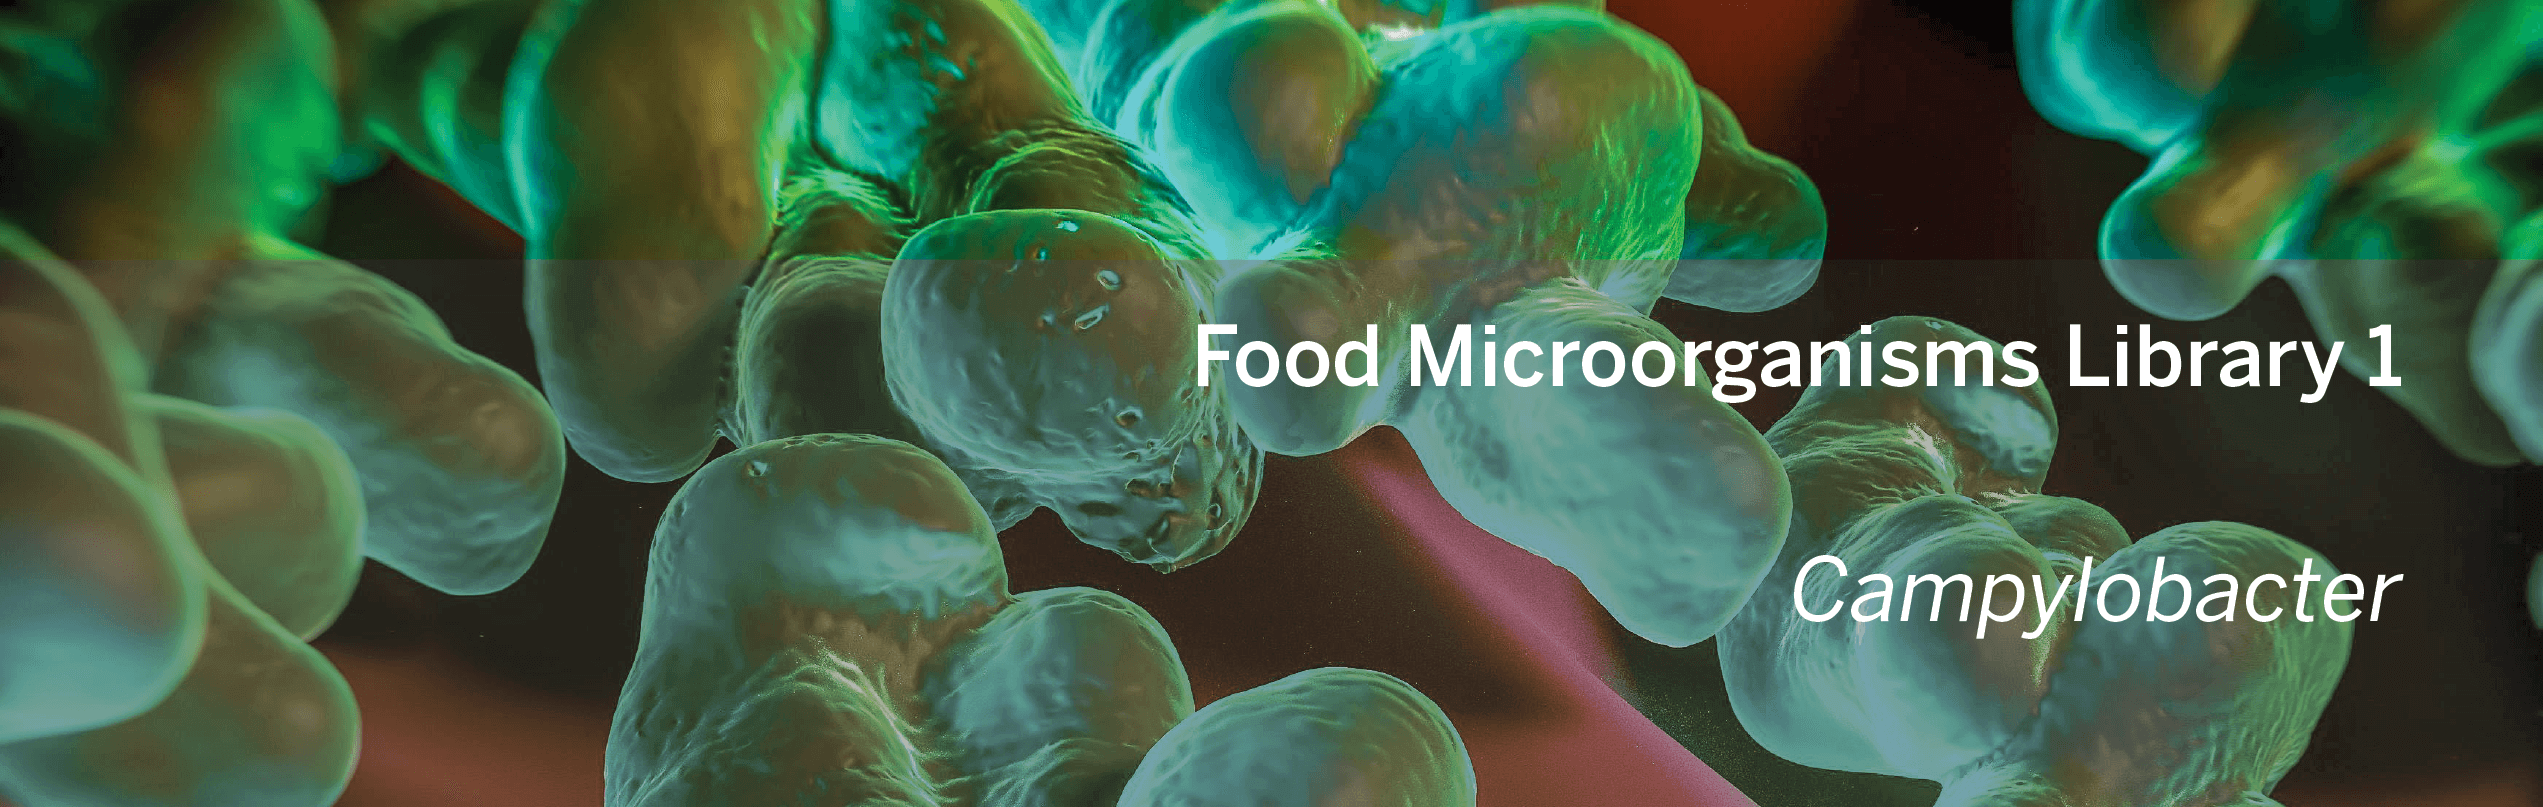 MOL0032005_Microorganisms Library_Campylobacter_banner.png